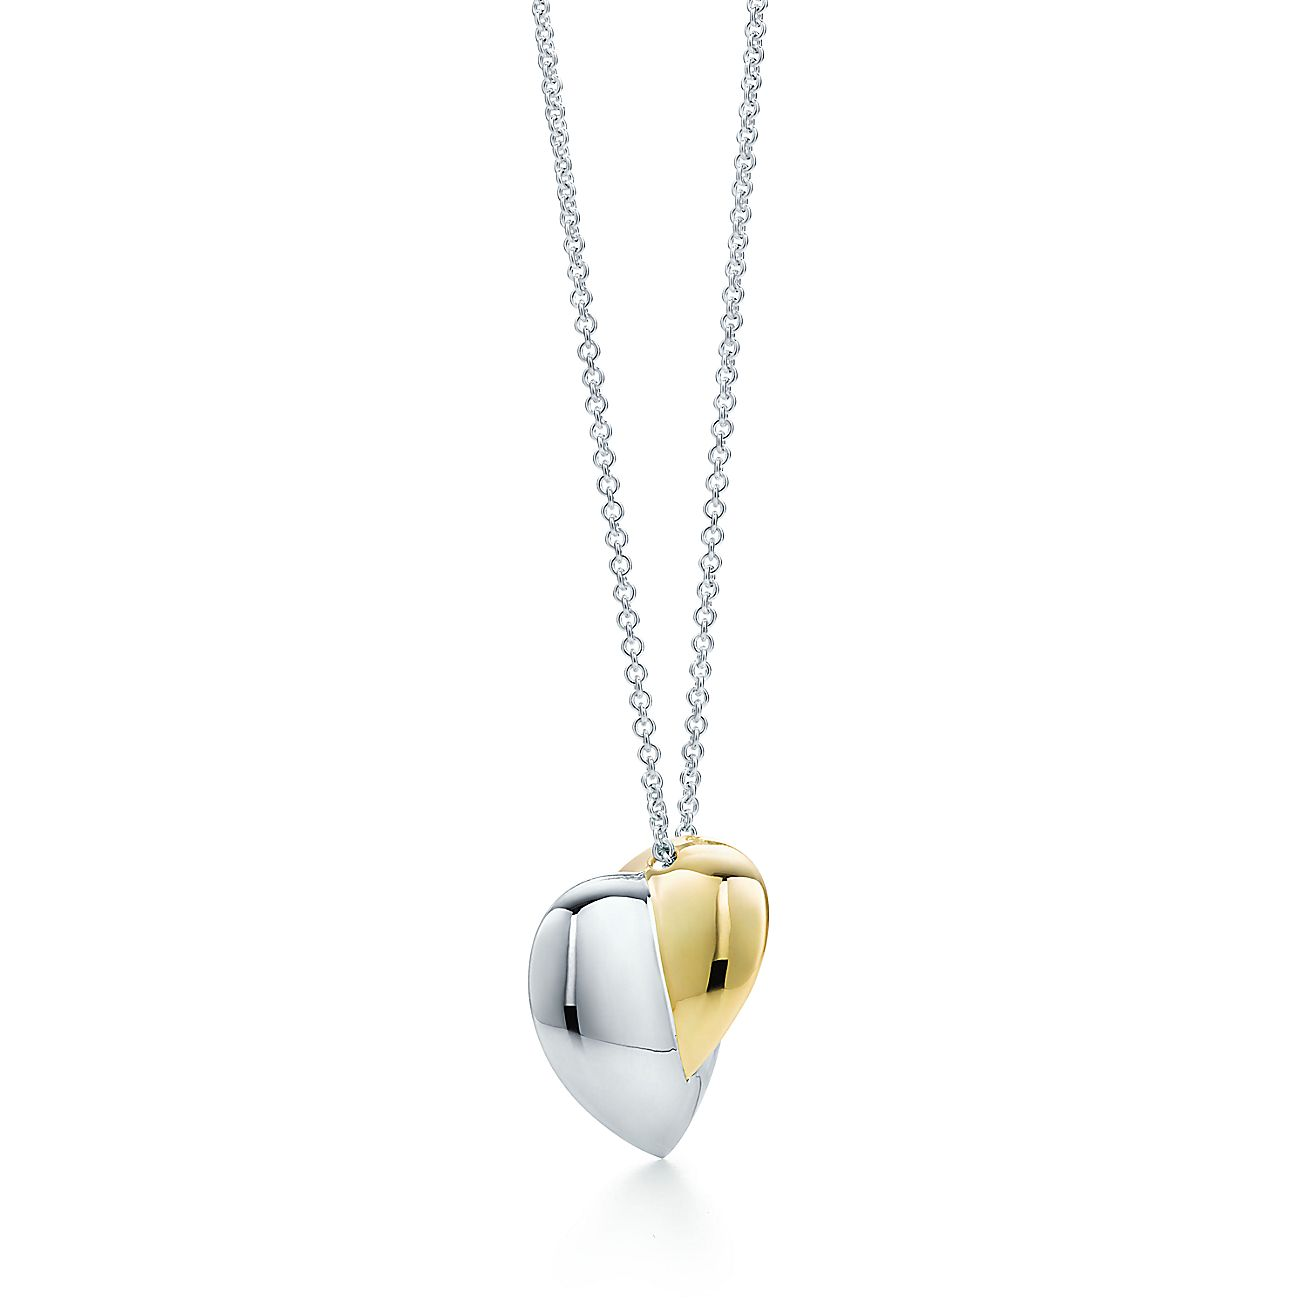 Frank Gehry Hearts Pendant In Sterling Silver And 18k